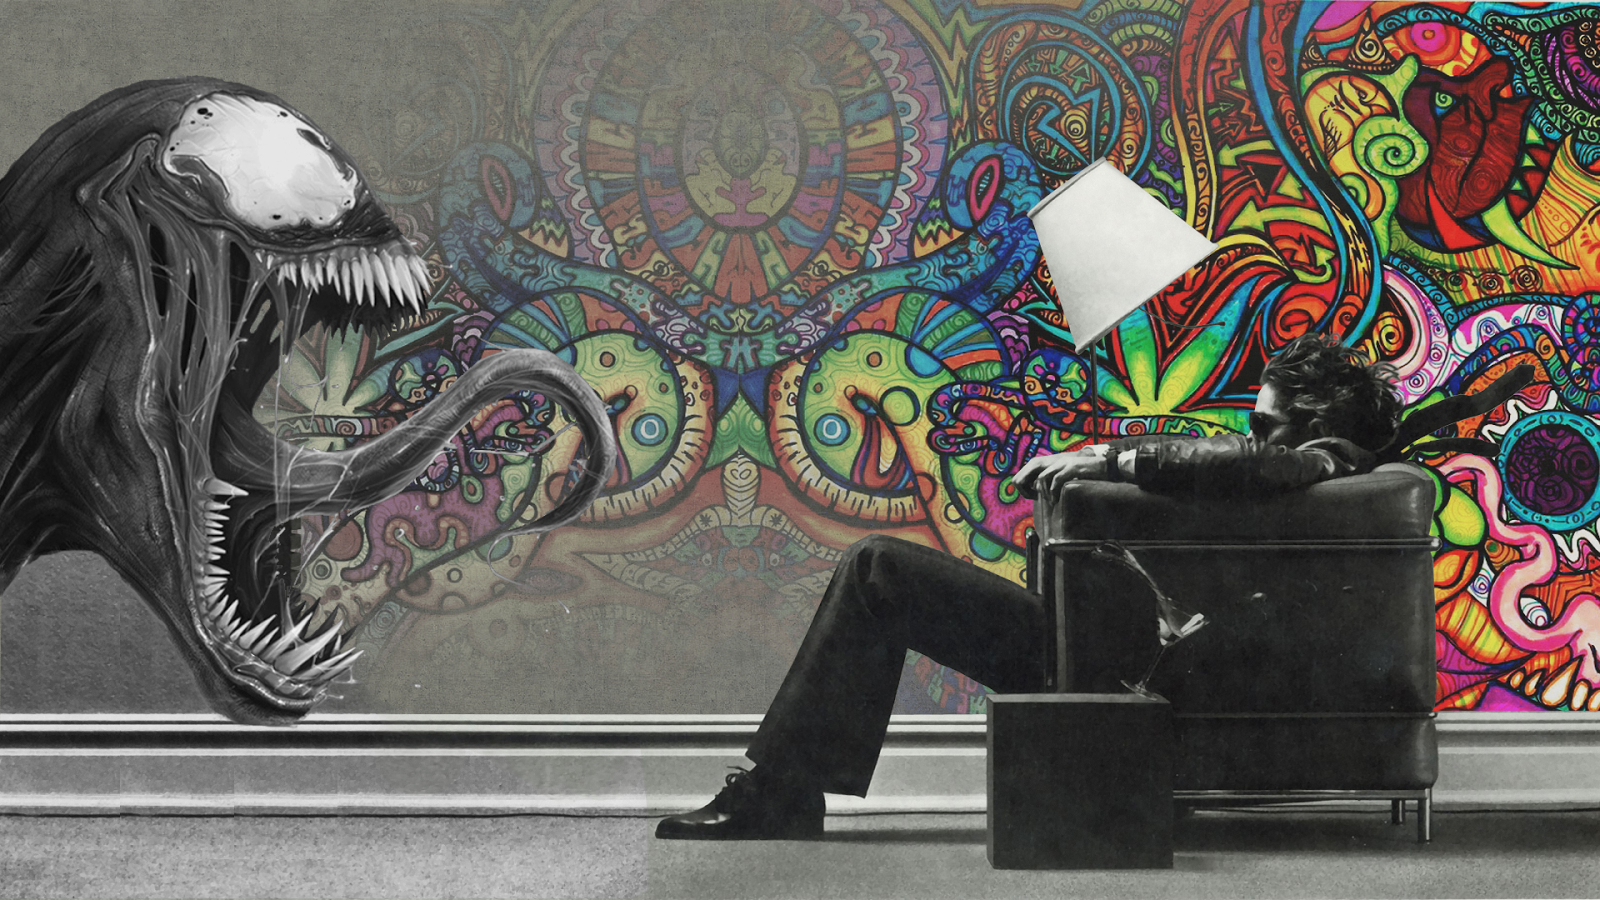 Free download Awesome Psychedelic Alien Surreal HD Wallpaper HD